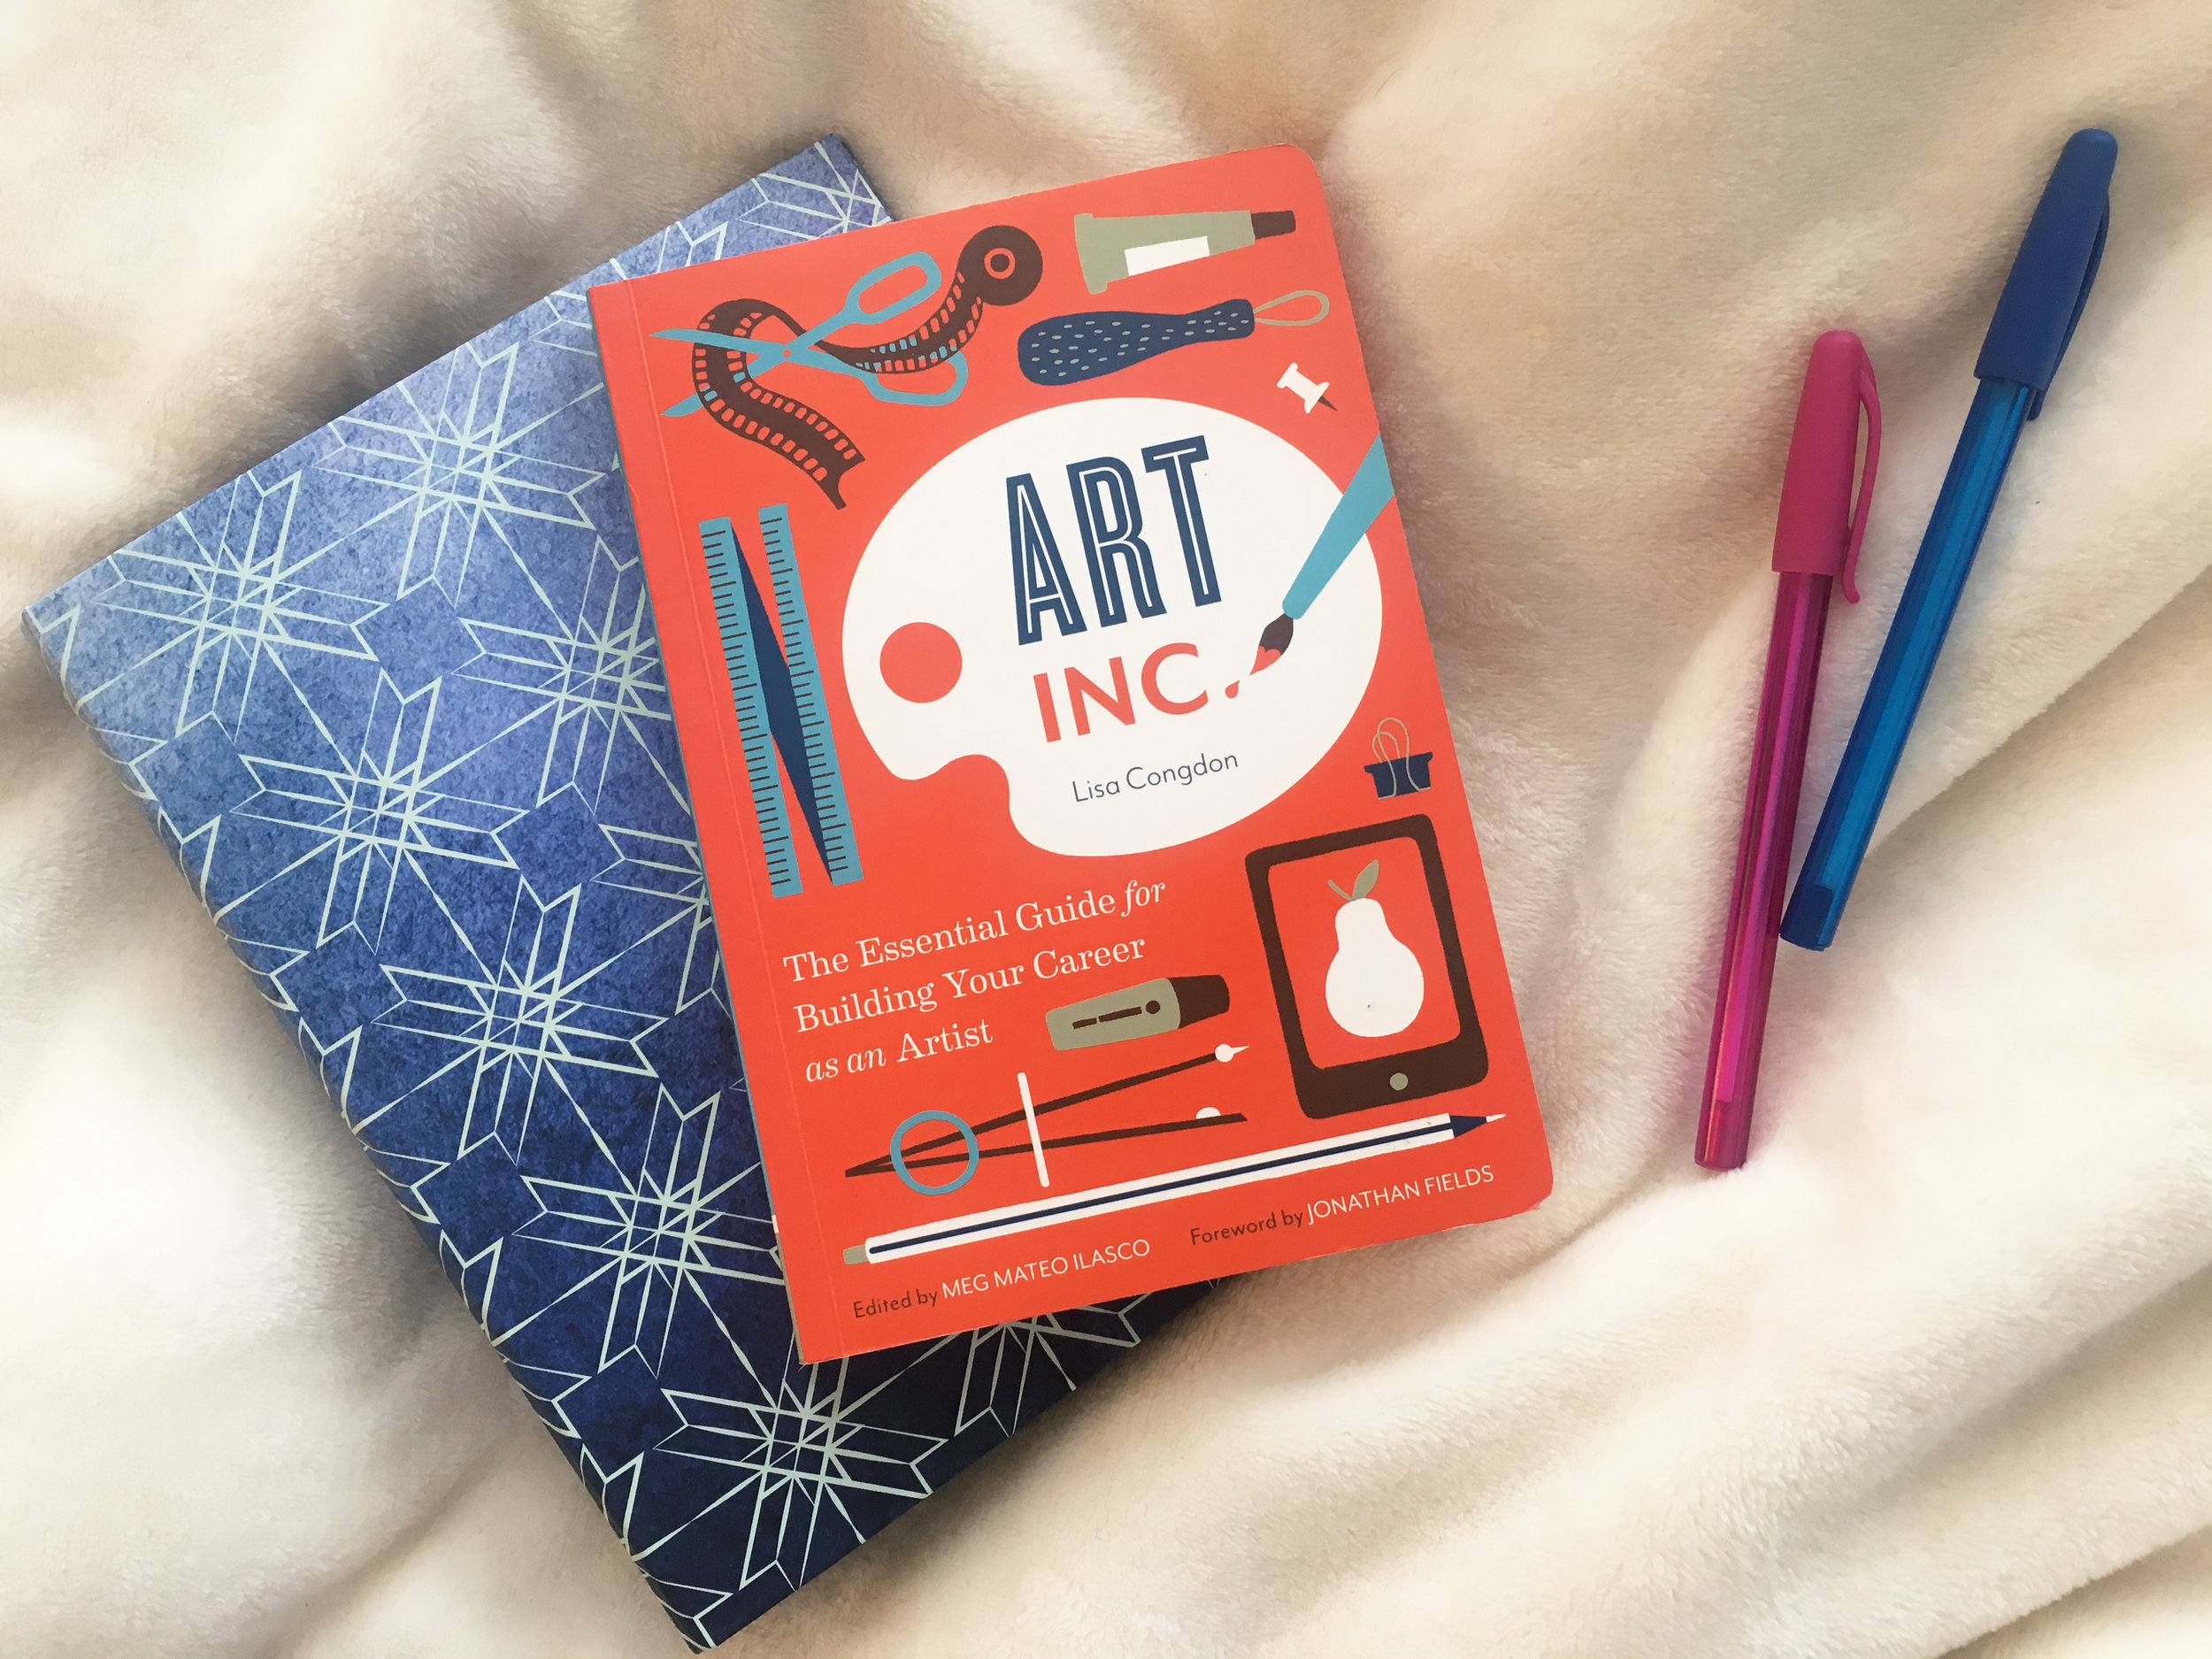 Lisa Congdon's amazing book Art Inc. and a cute binder I picked up from Target.